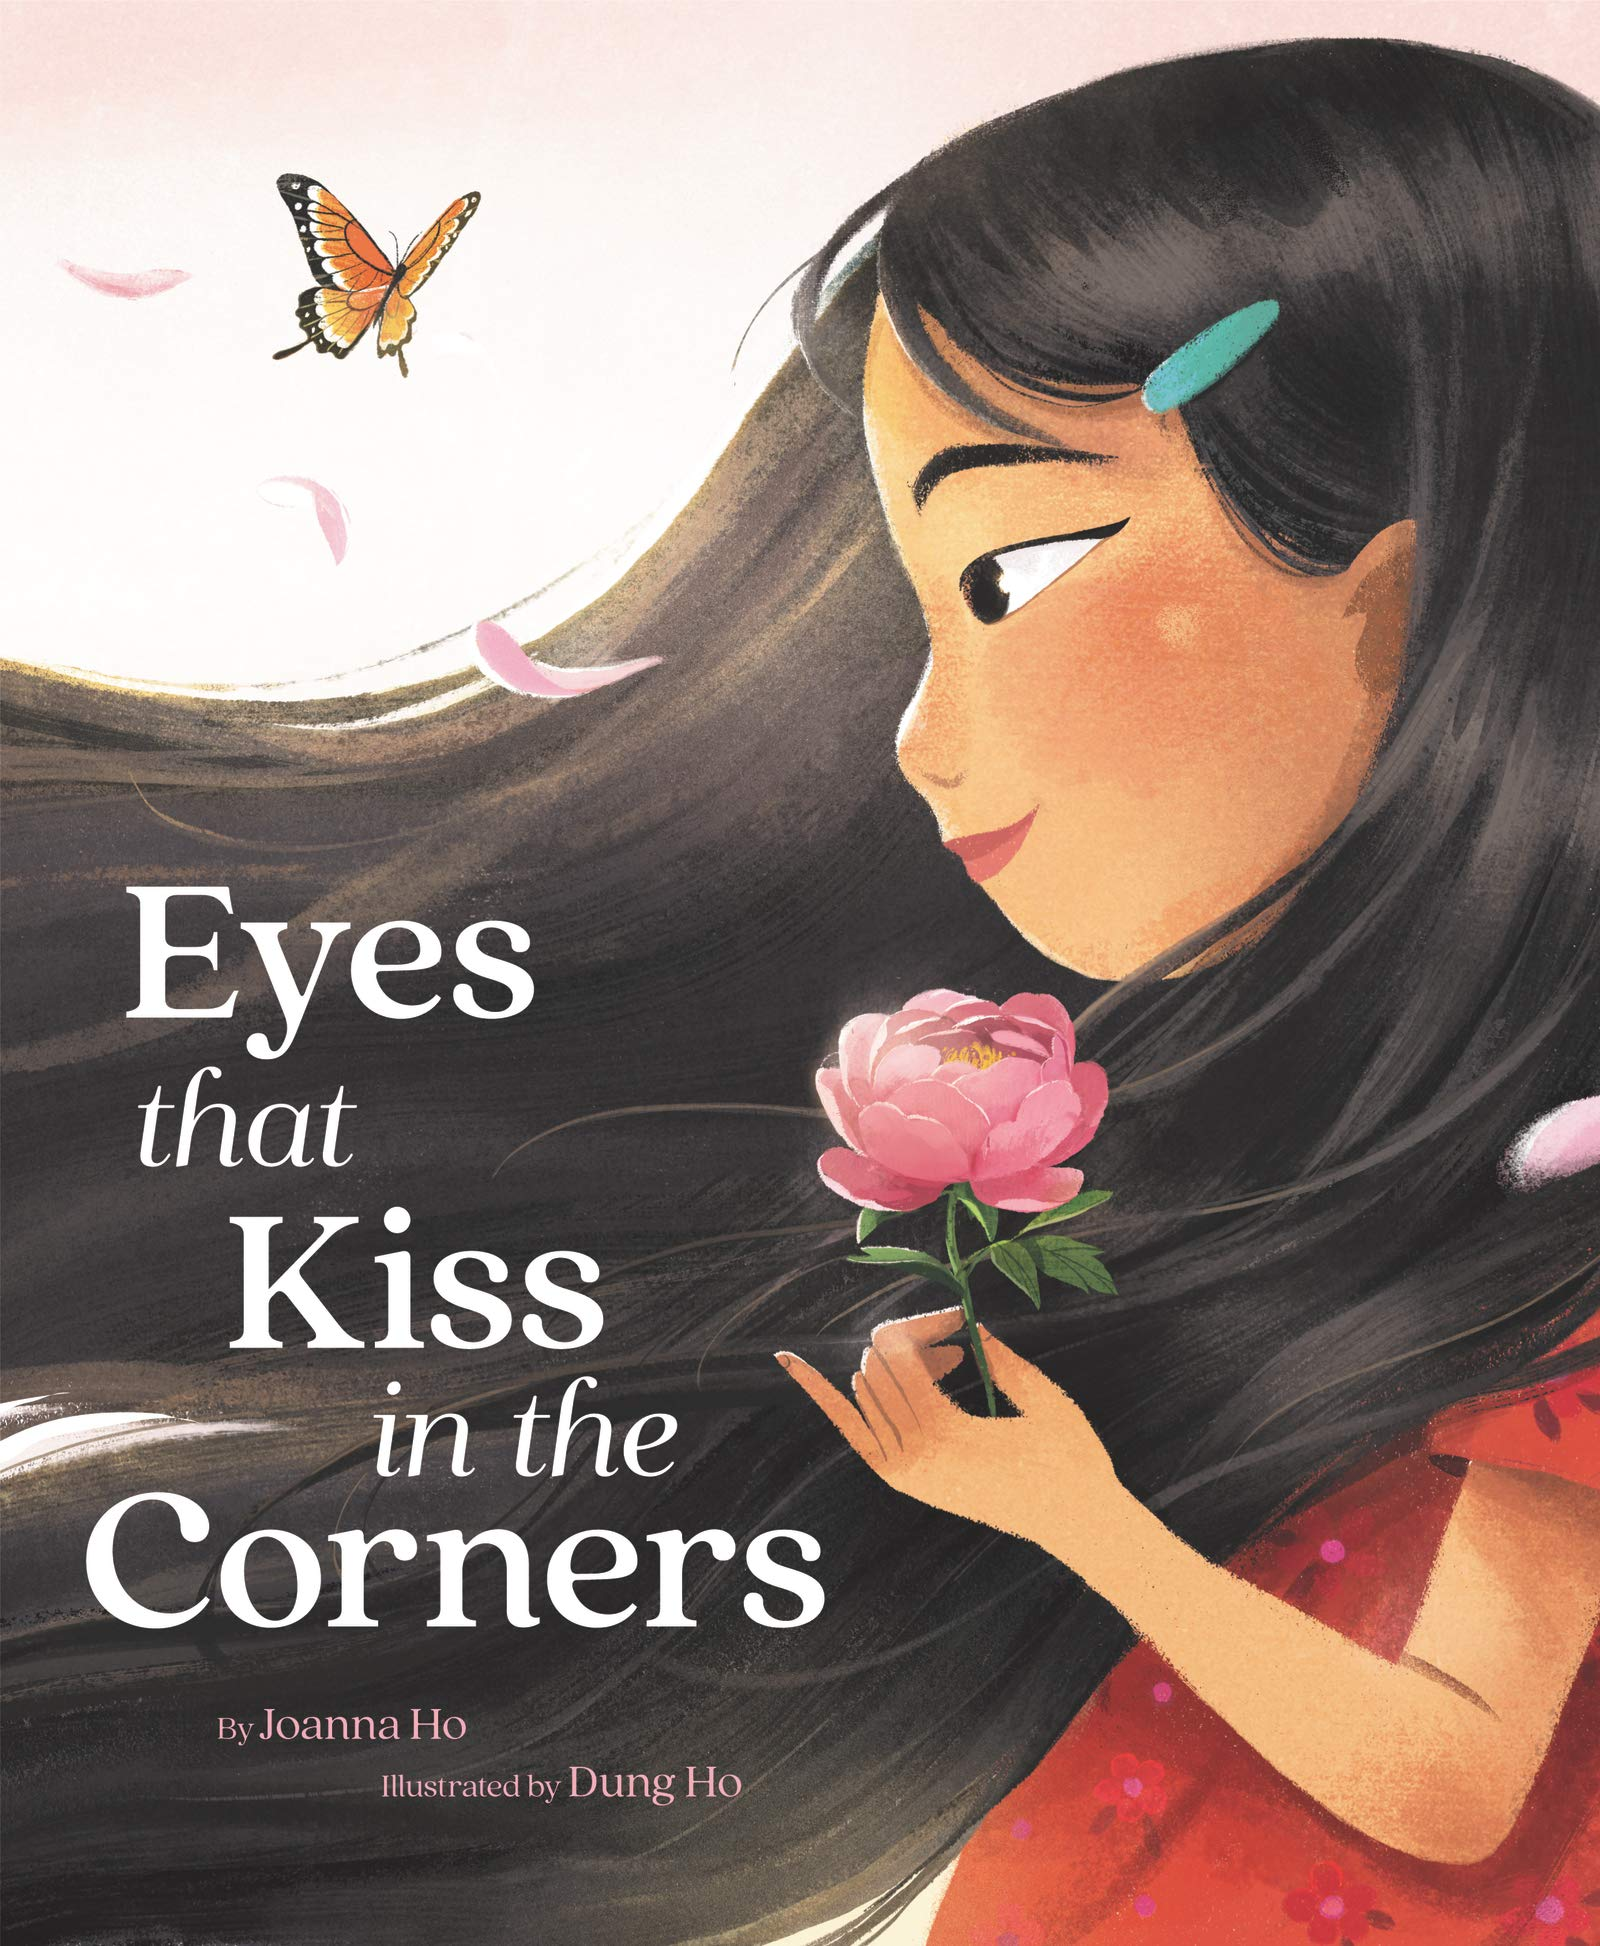 Image result for eyes that kiss in the corners amazon